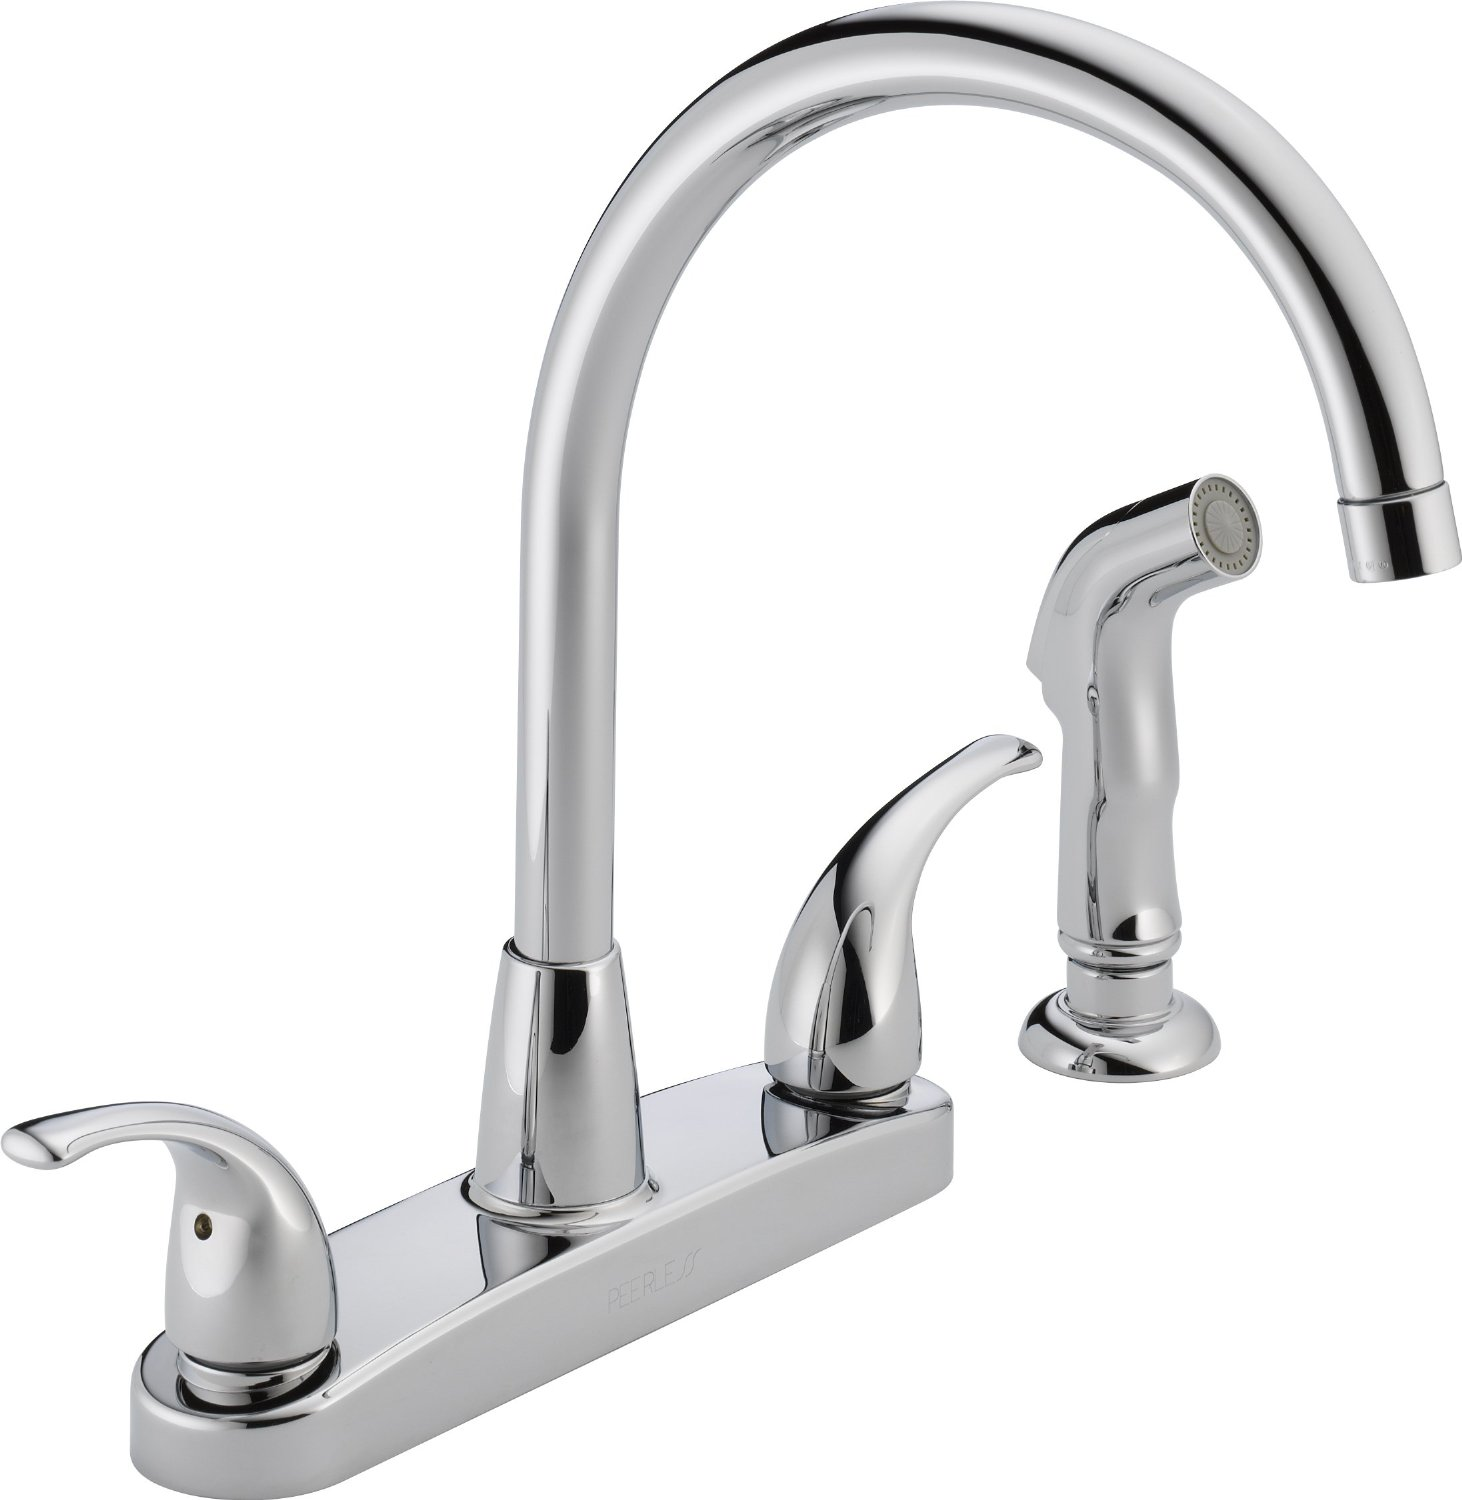 repair kitchen faucet kitchen faucet replacement parts faucet replacement u repair in west hills